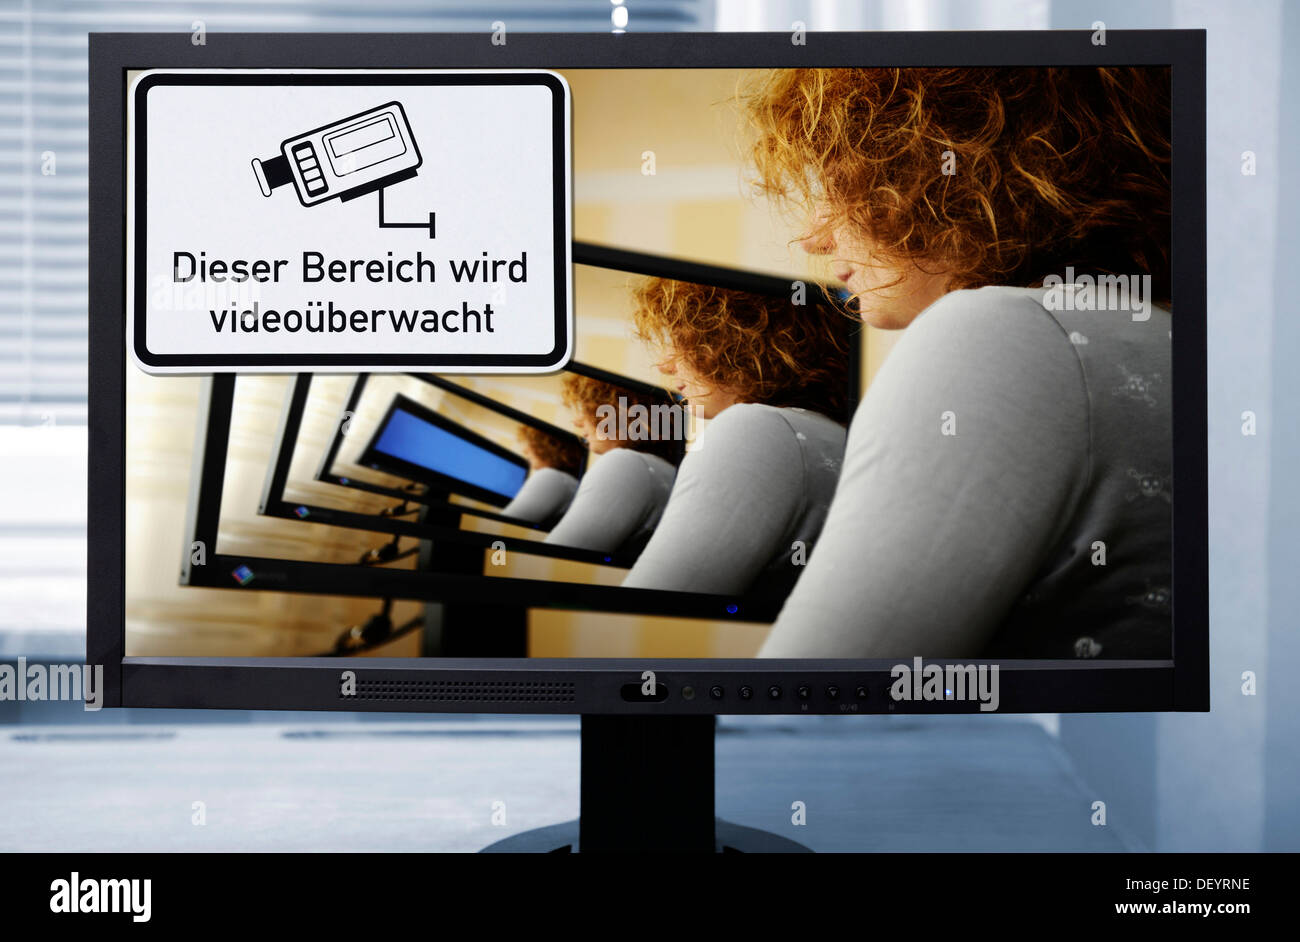 Woman at the computer with sign 'Dieser Bereich wird videoueberwacht', German for 'this area is under video surveillance' - Stock Image